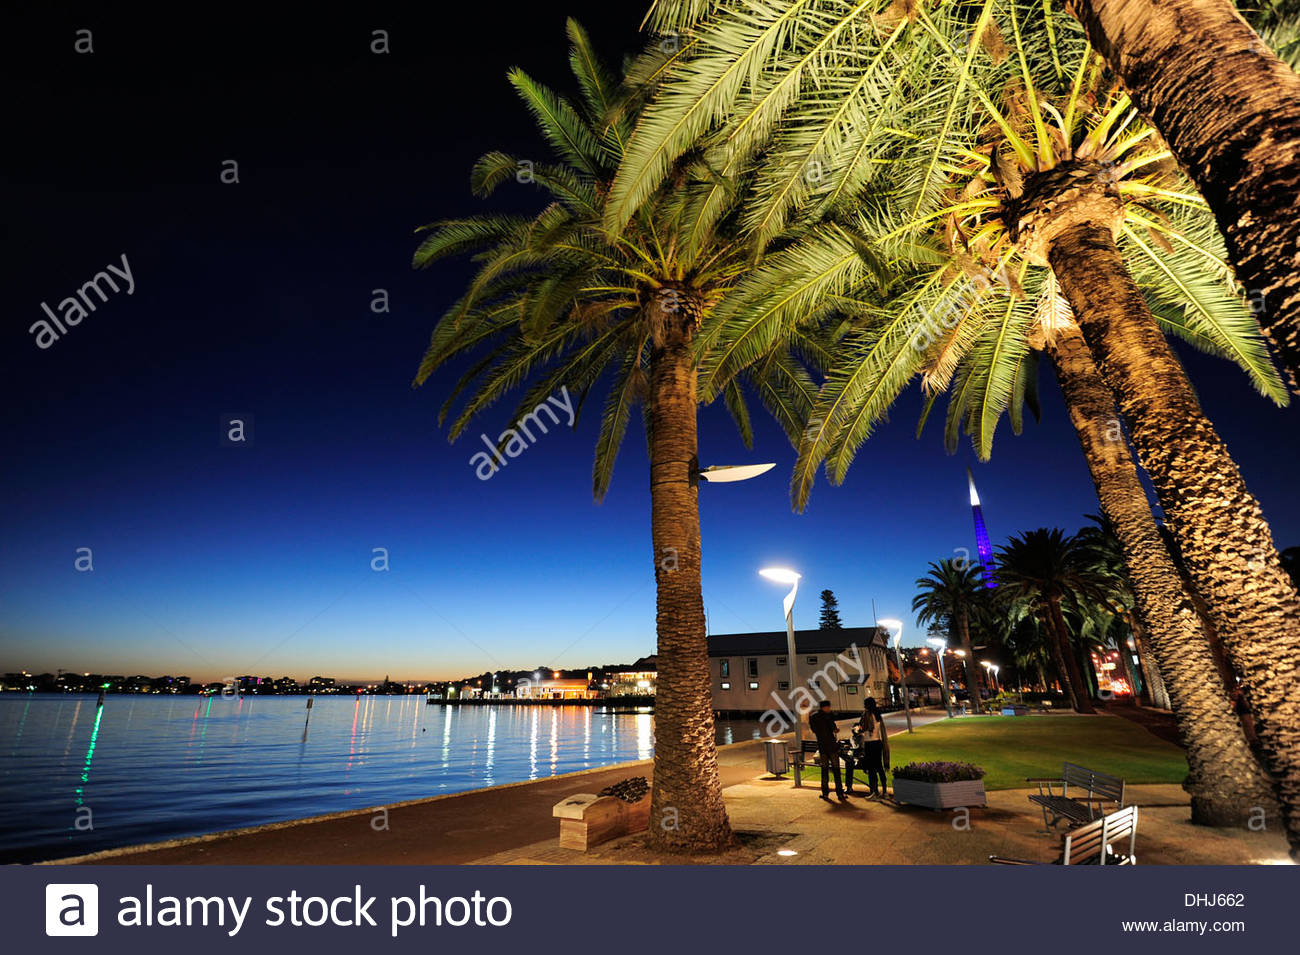 Palm trees between Swan River and Riverside Drive in the evening, Central City Area, Perth, Western Australia, WA, Australia - Stock Image